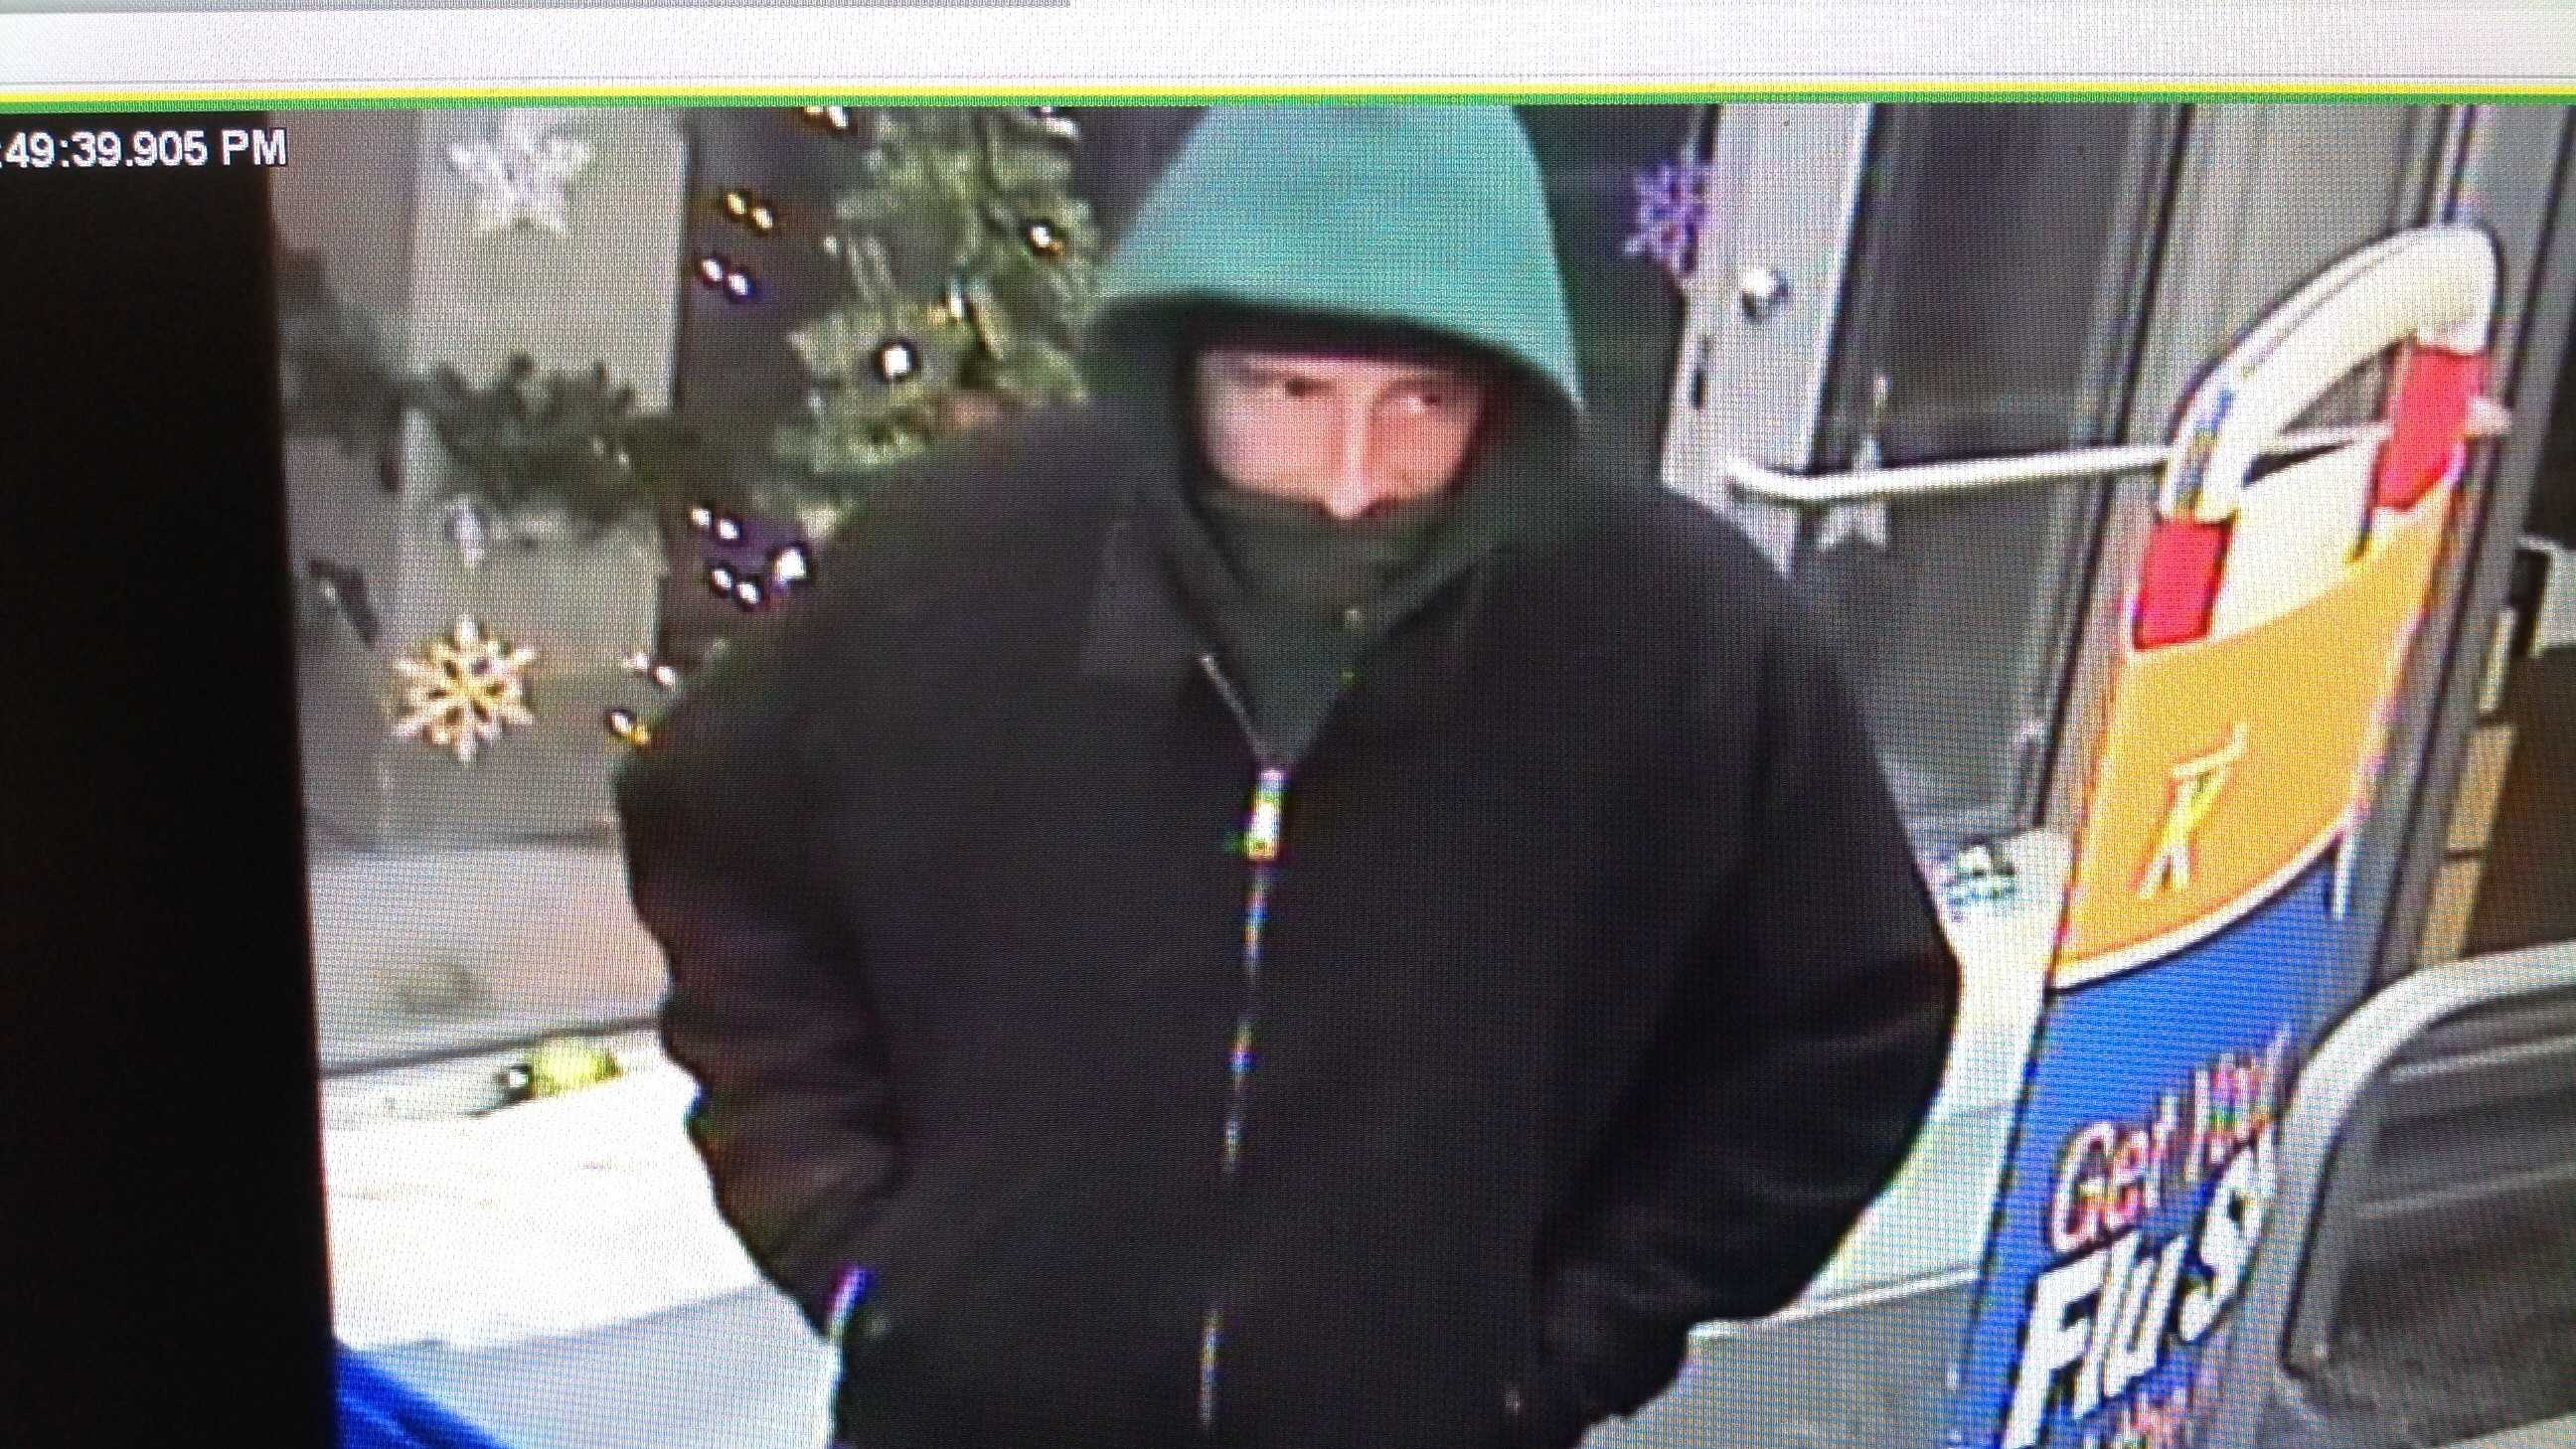 DO YOU RECOGNIZE HIM? Middlebury Police are looking for a man they say made off with narcotics from the Rite Aid Store Sunday evening.  The surveillance picture is from a Kinney Drugs police say he'd been staking out.